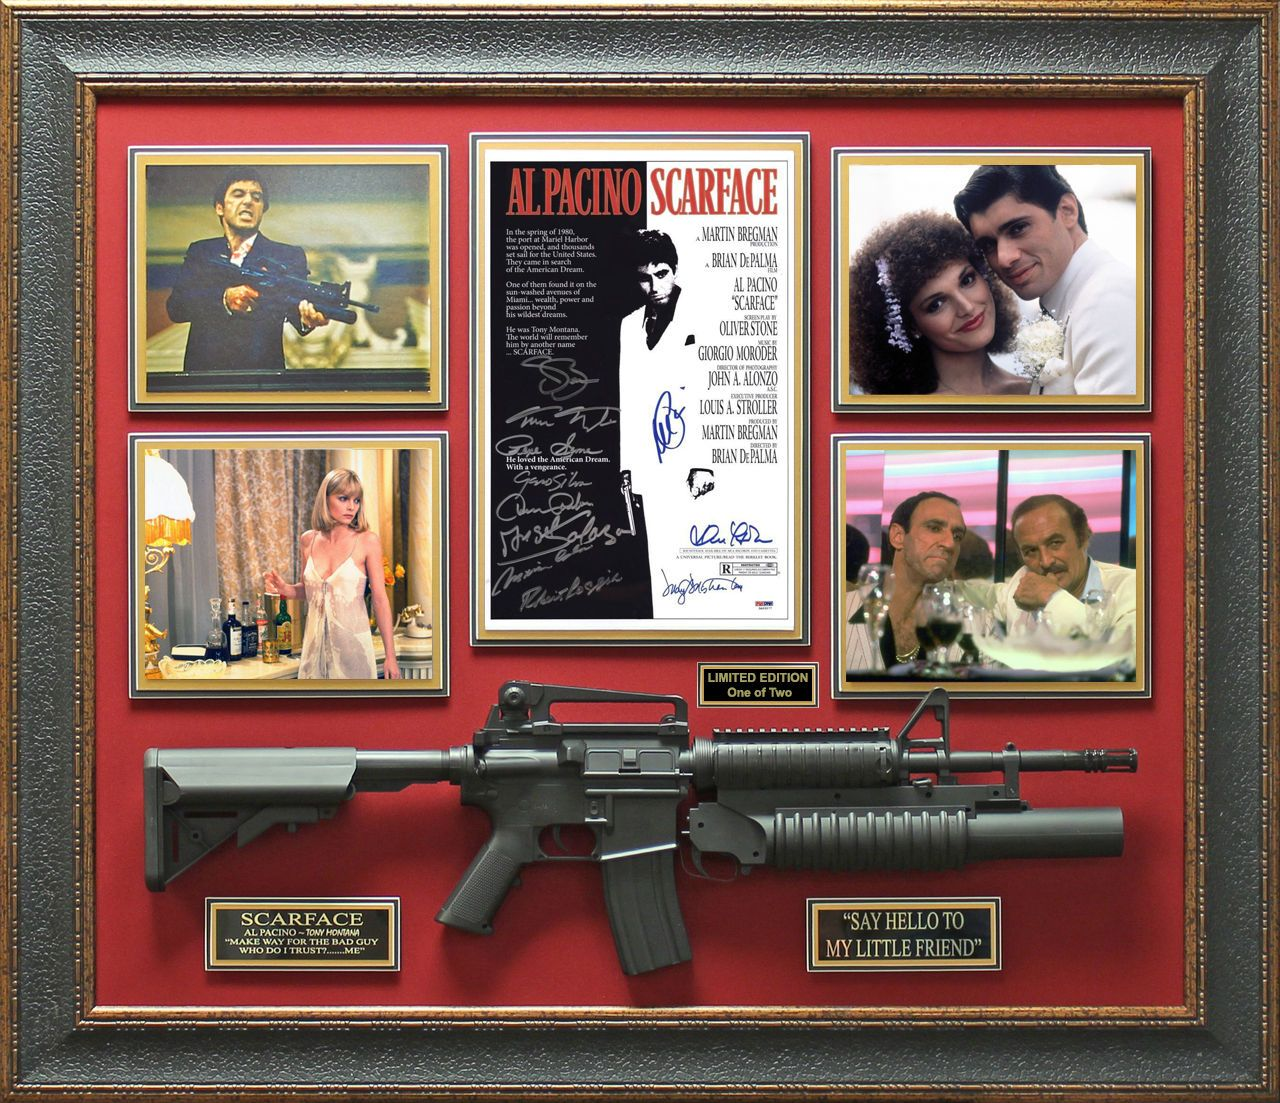 Scarface Cast Signed Movie Poster Framed Display Le 1 Of 2 Ebay